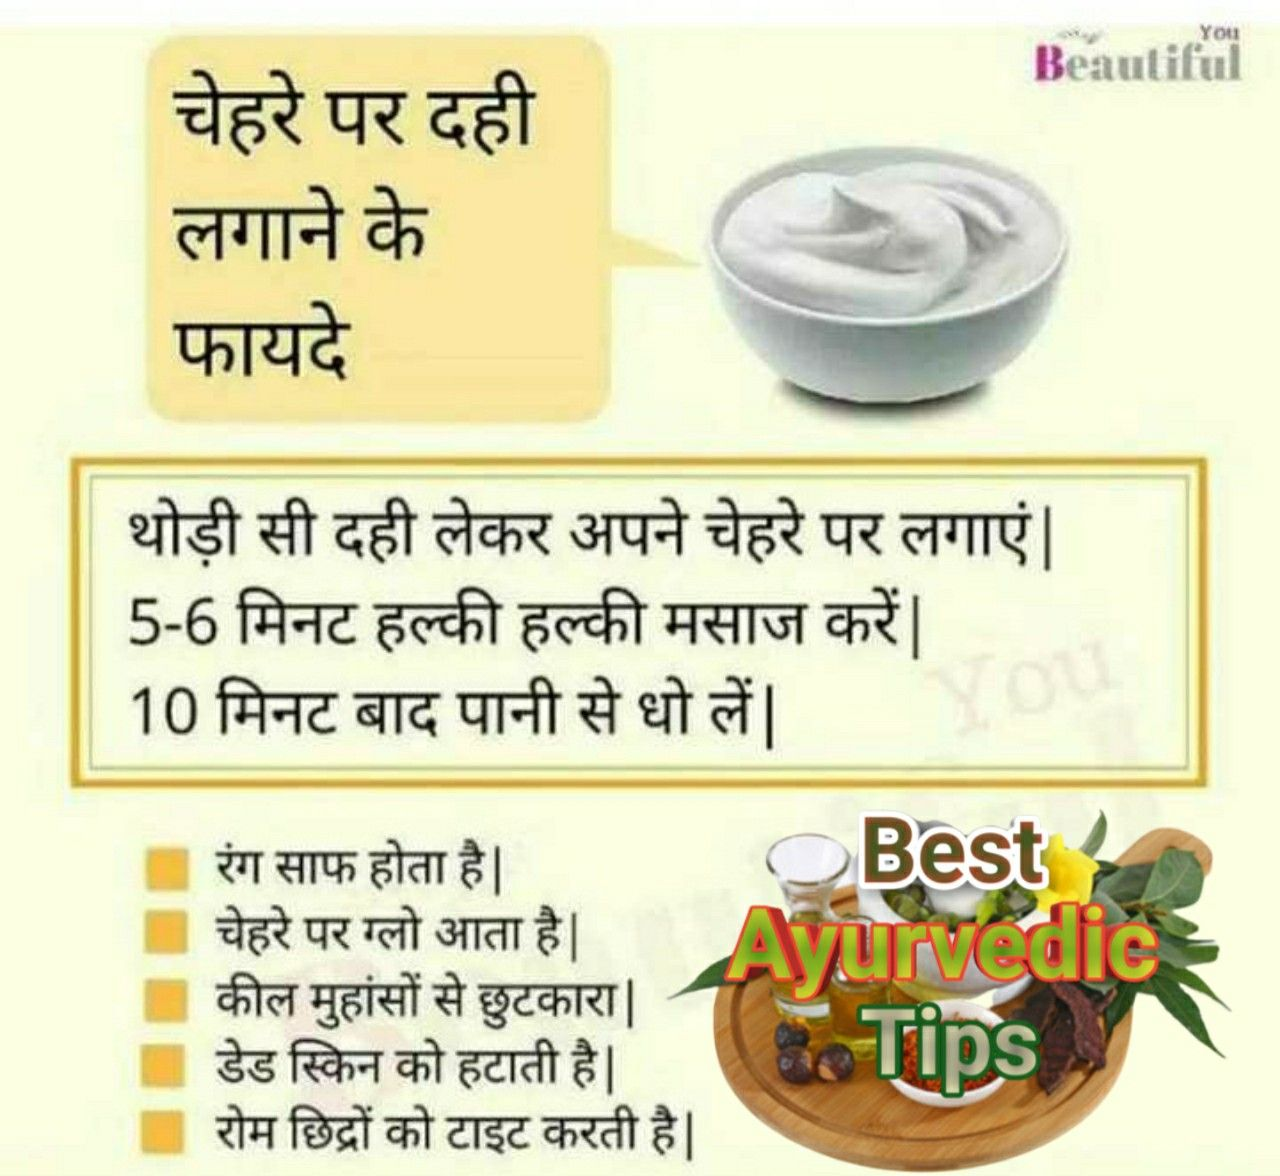 Best Ayurvedic Tips you Tube channel  Natural skin care diy